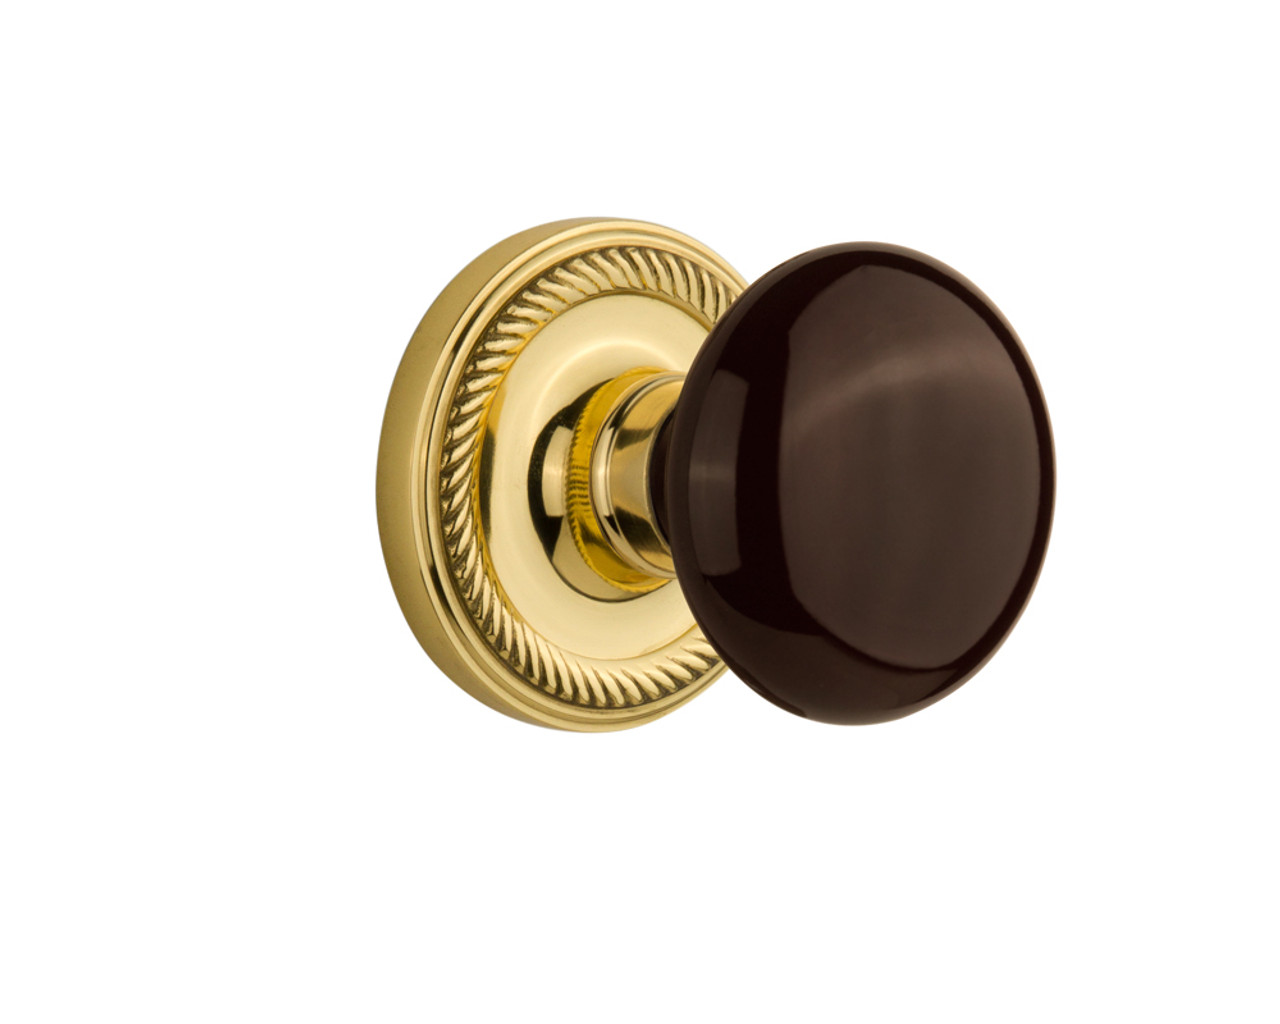 Nostalgic Warehouse Rope Rosette Double Dummy Brown Porcelain Door Knob in Polished Brass (NW-710664)